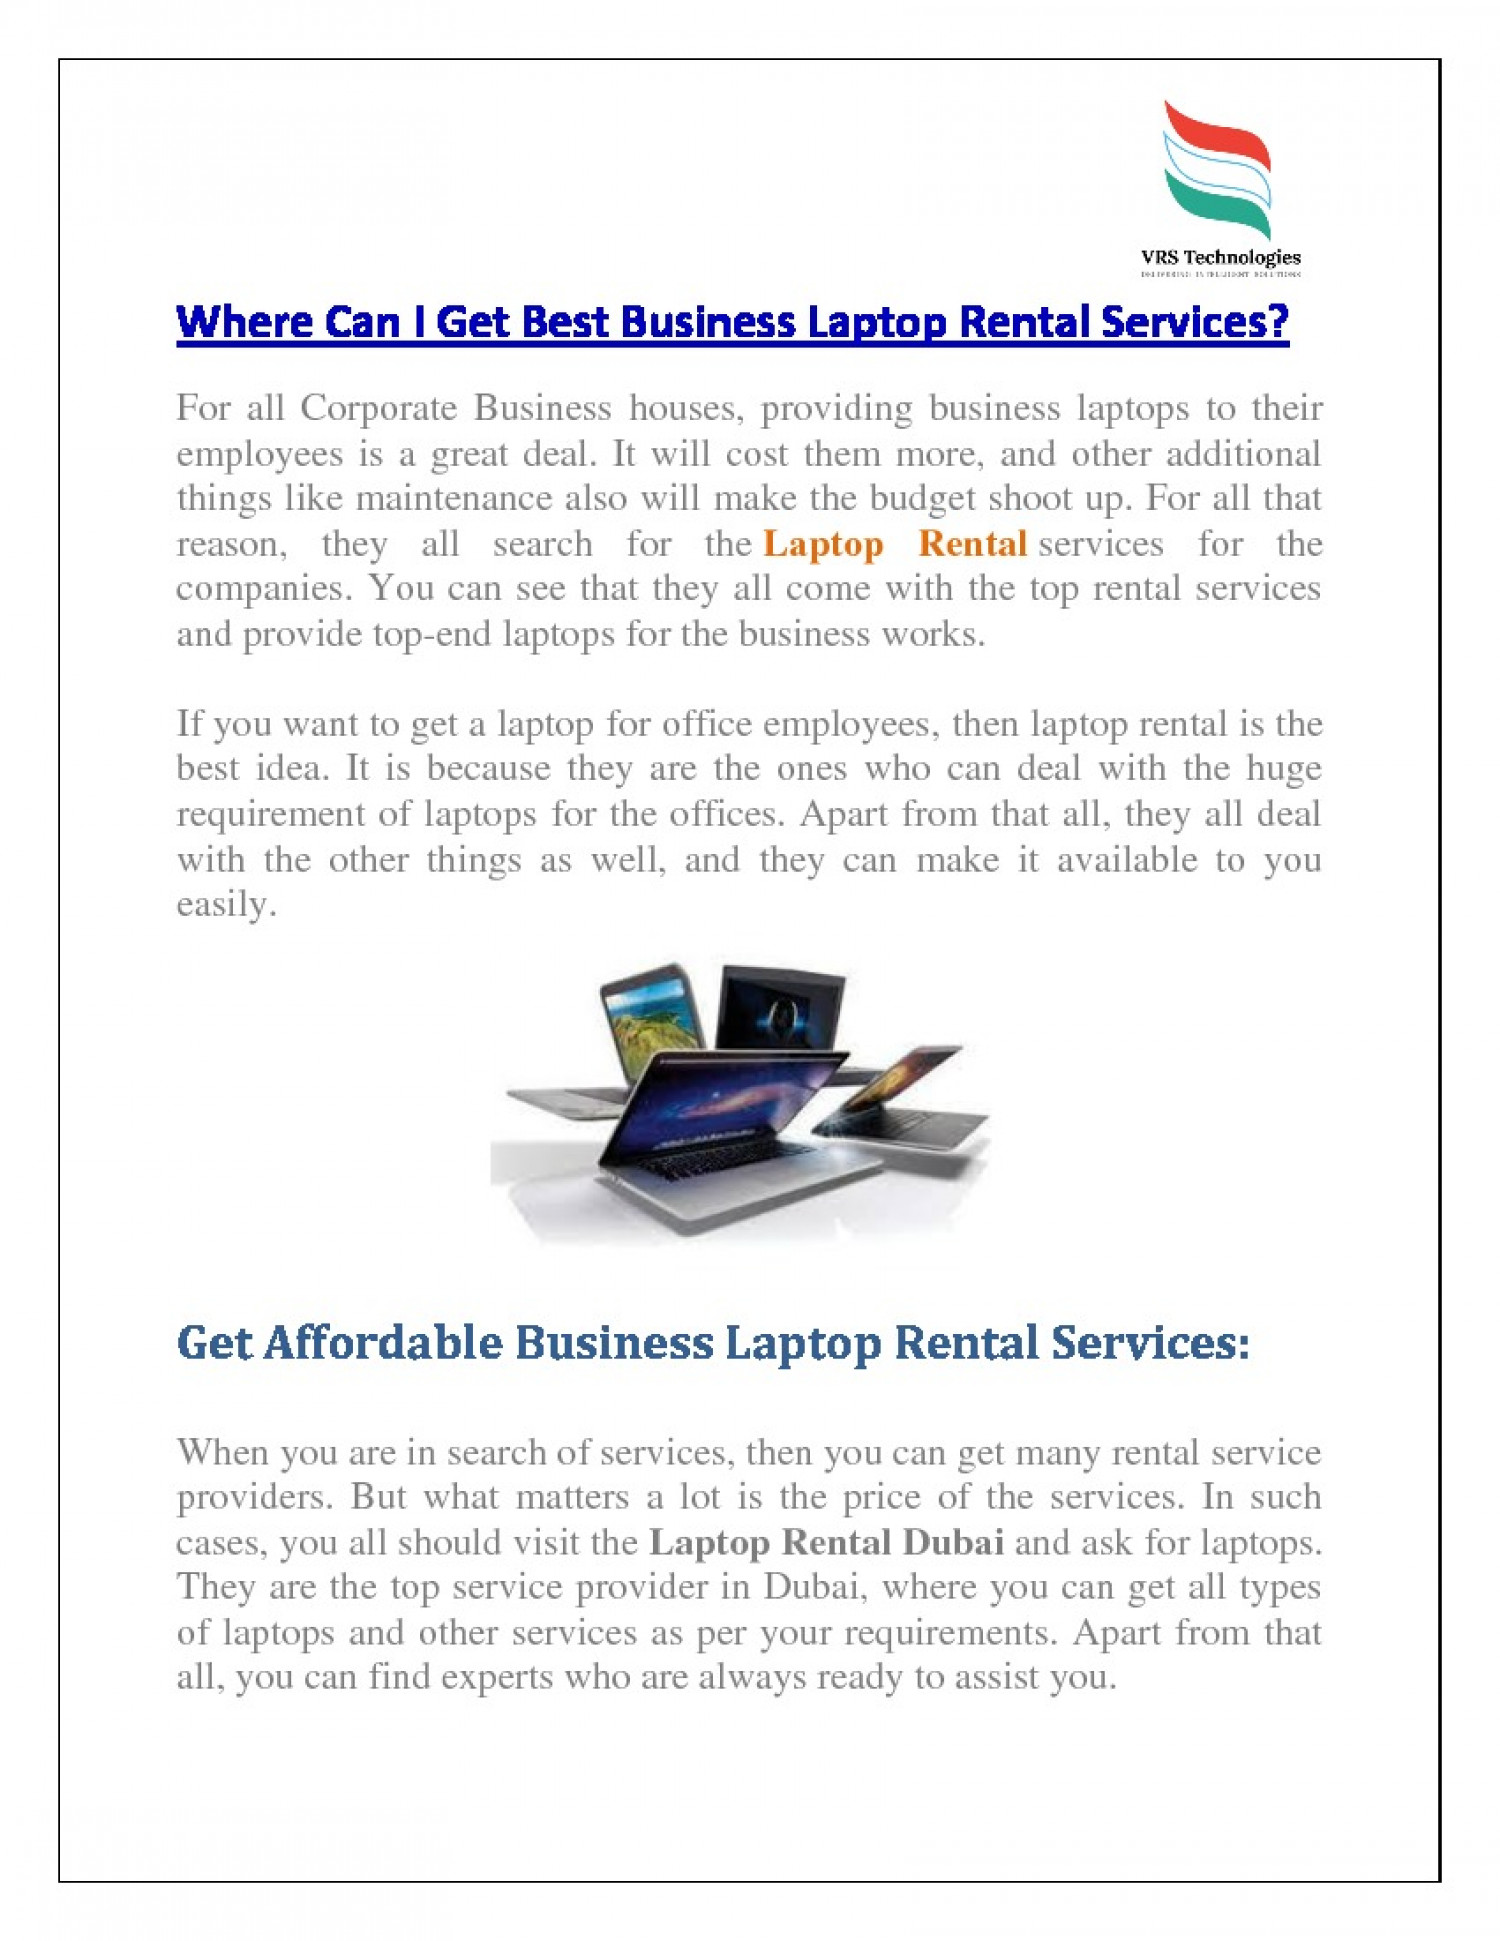 Where Can I Get Best Business Laptop Rental Services? Infographic